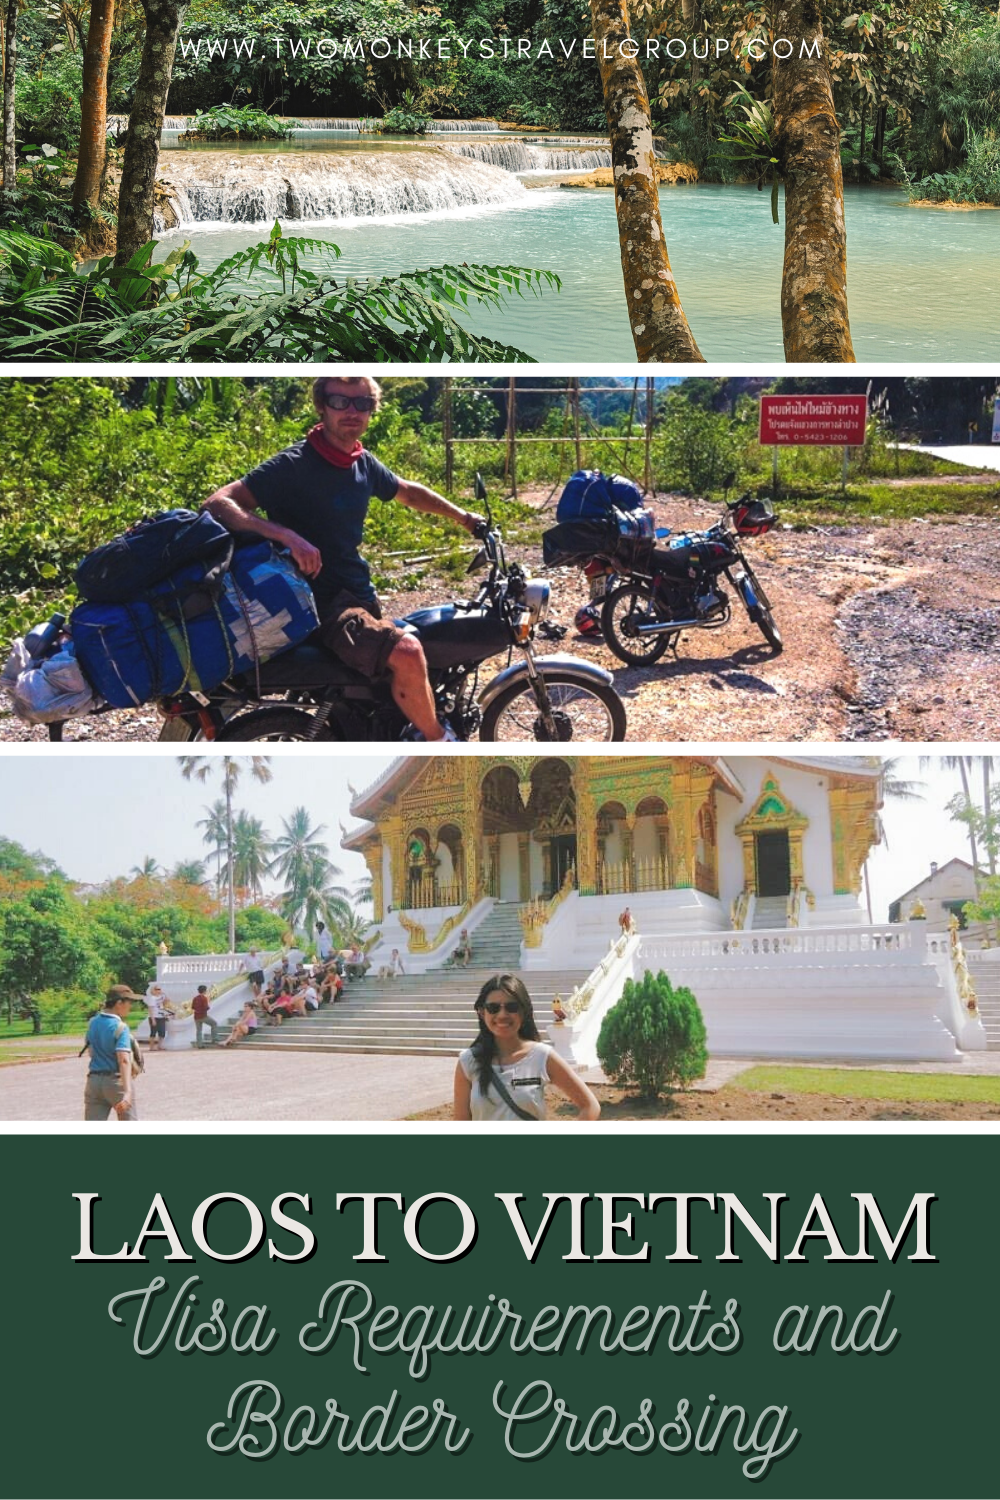 Visa Requirements and Border Crossing from Laos to Vietnam (vice versa)